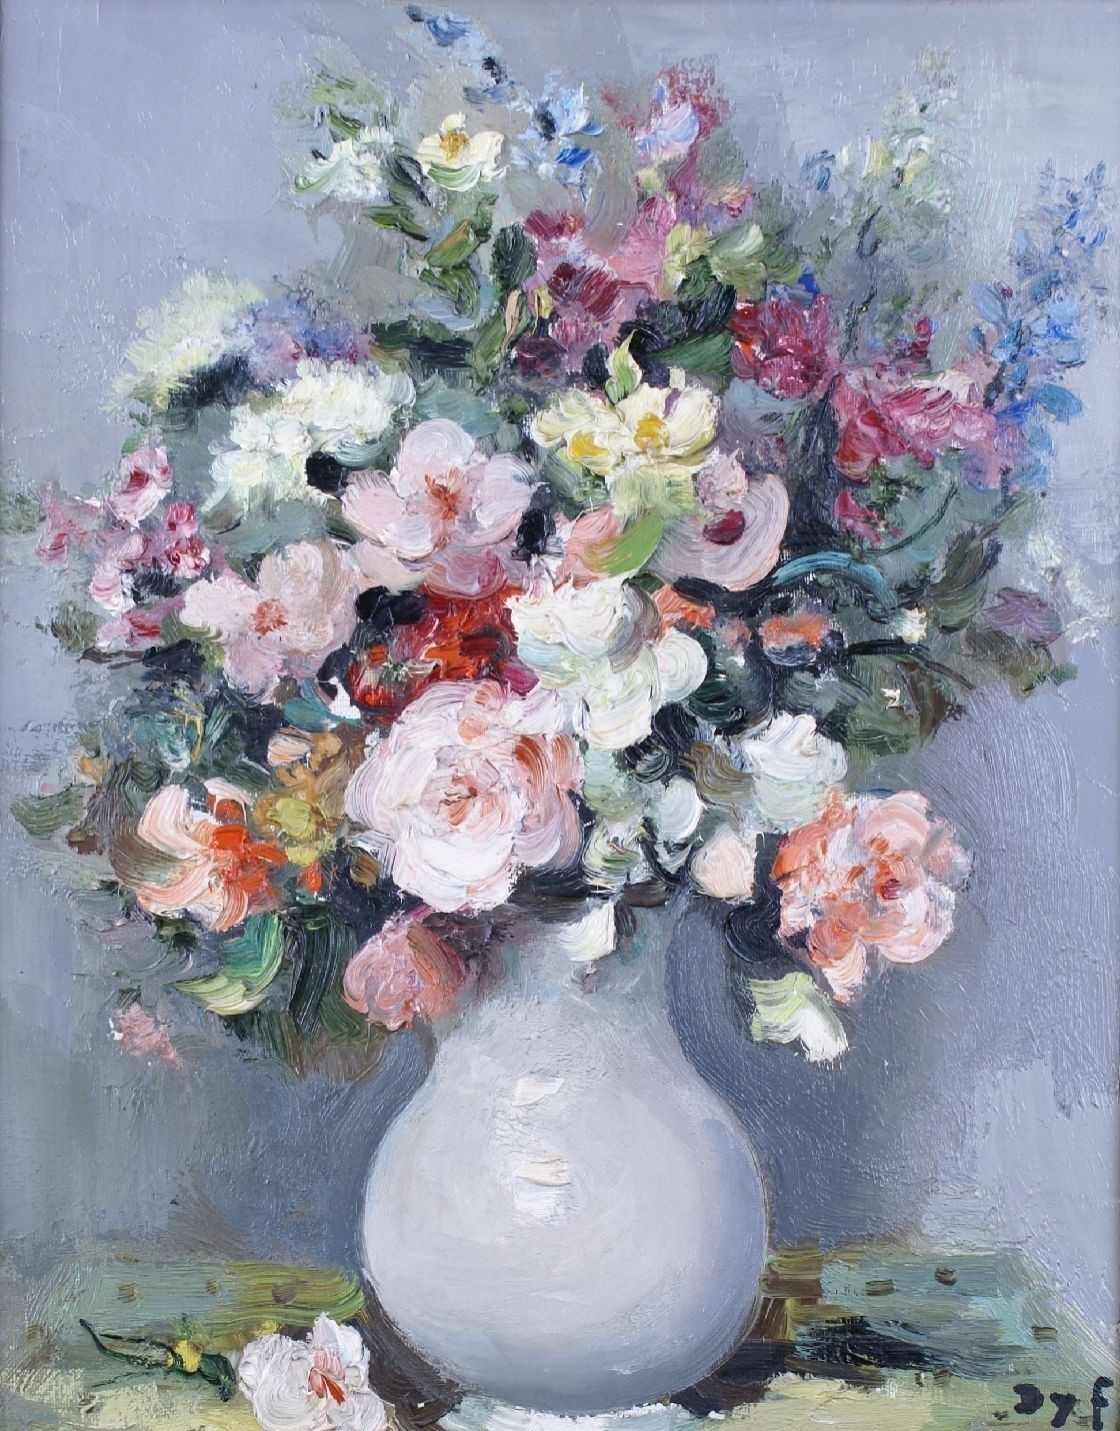 swarovski vases sale of marcel dyf wild flowers in a vase art pinterest marcel intended for wild flowers in a vase artwork by marcel dyf oil painting art prints on canvas for sale